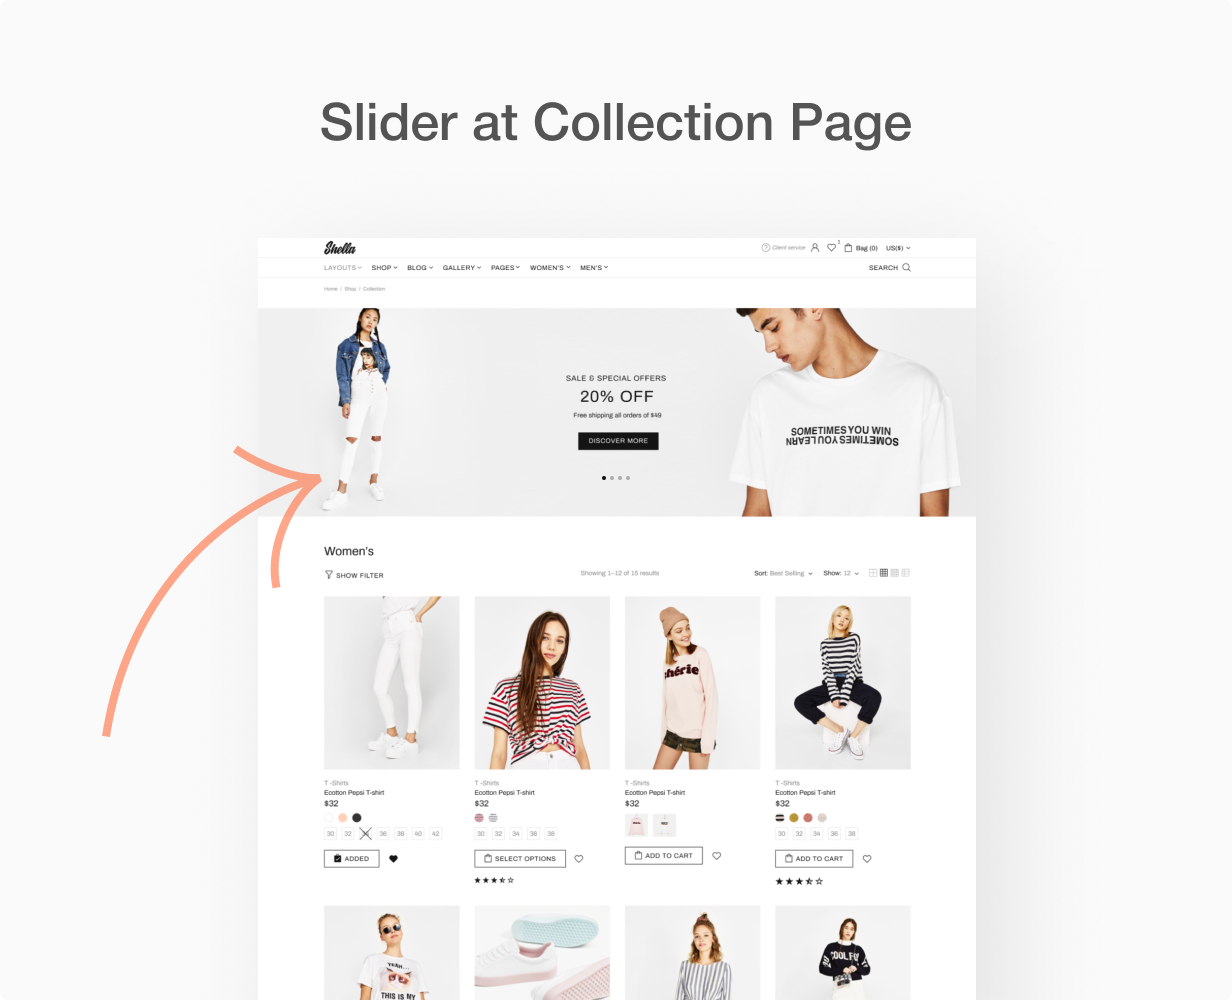 Slider at collection page